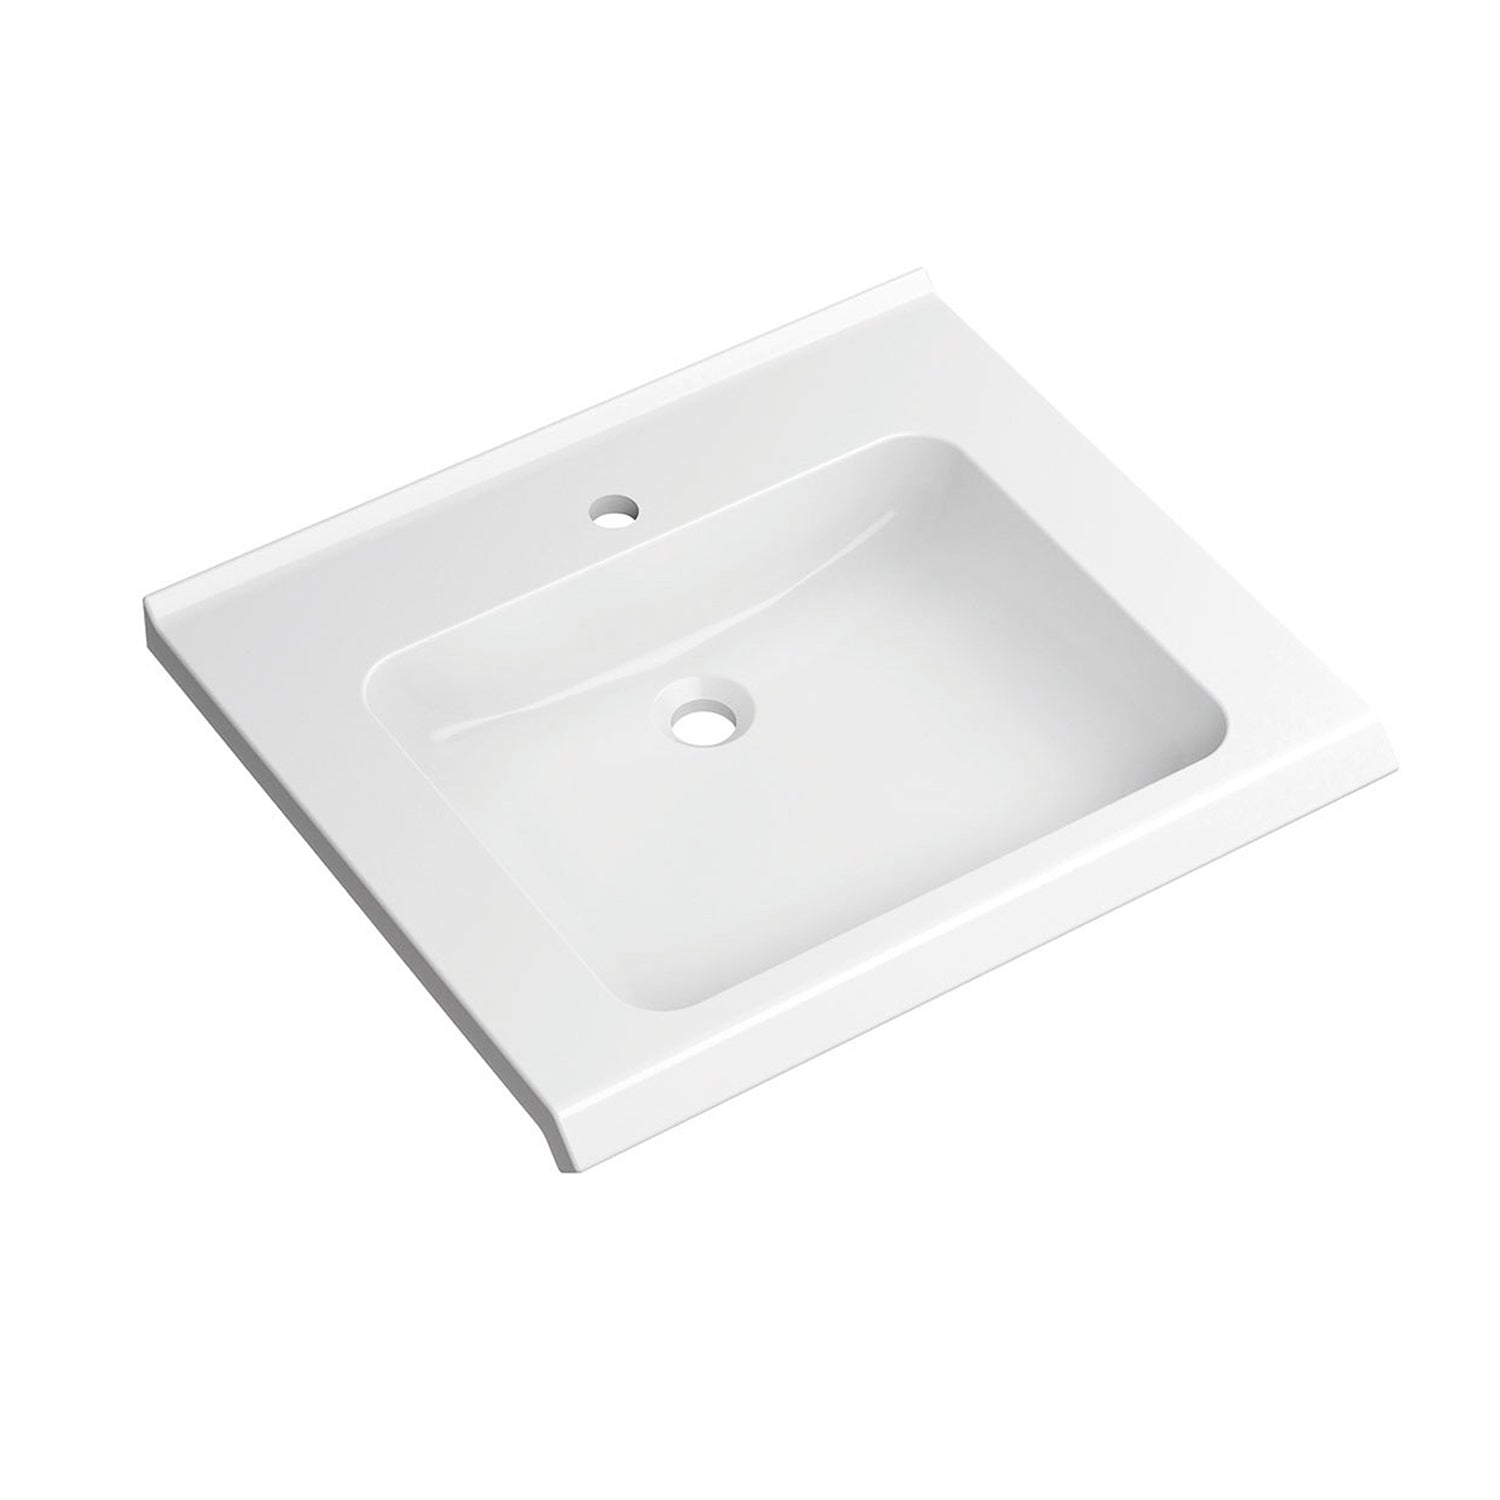 650mm SurfaceHold Wall Hung Basin with one tap hole on a white background